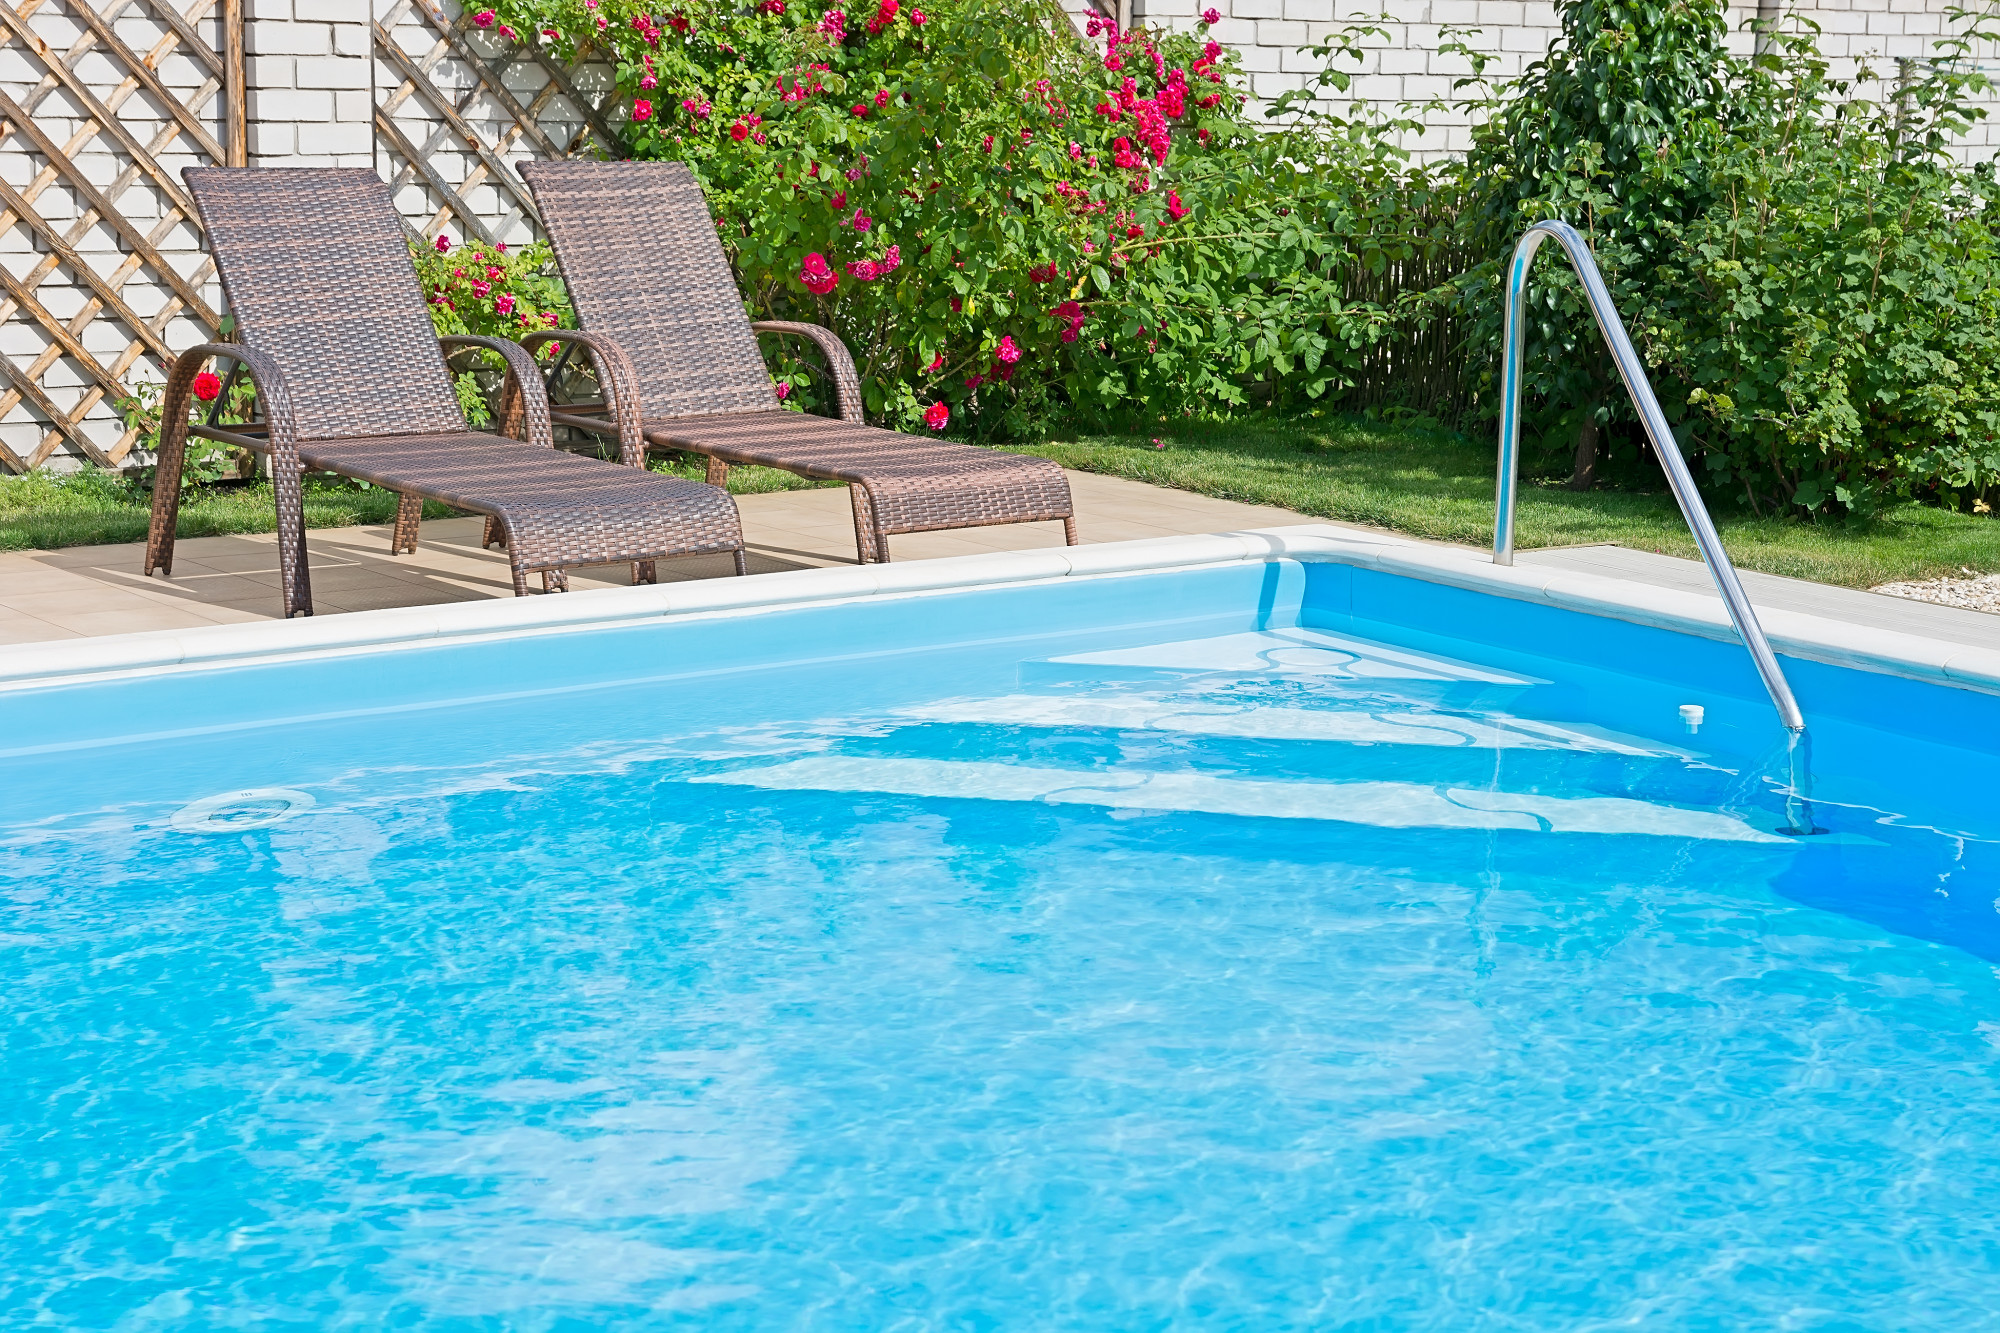 The Scoop on Inground Pools: How to Start Saving